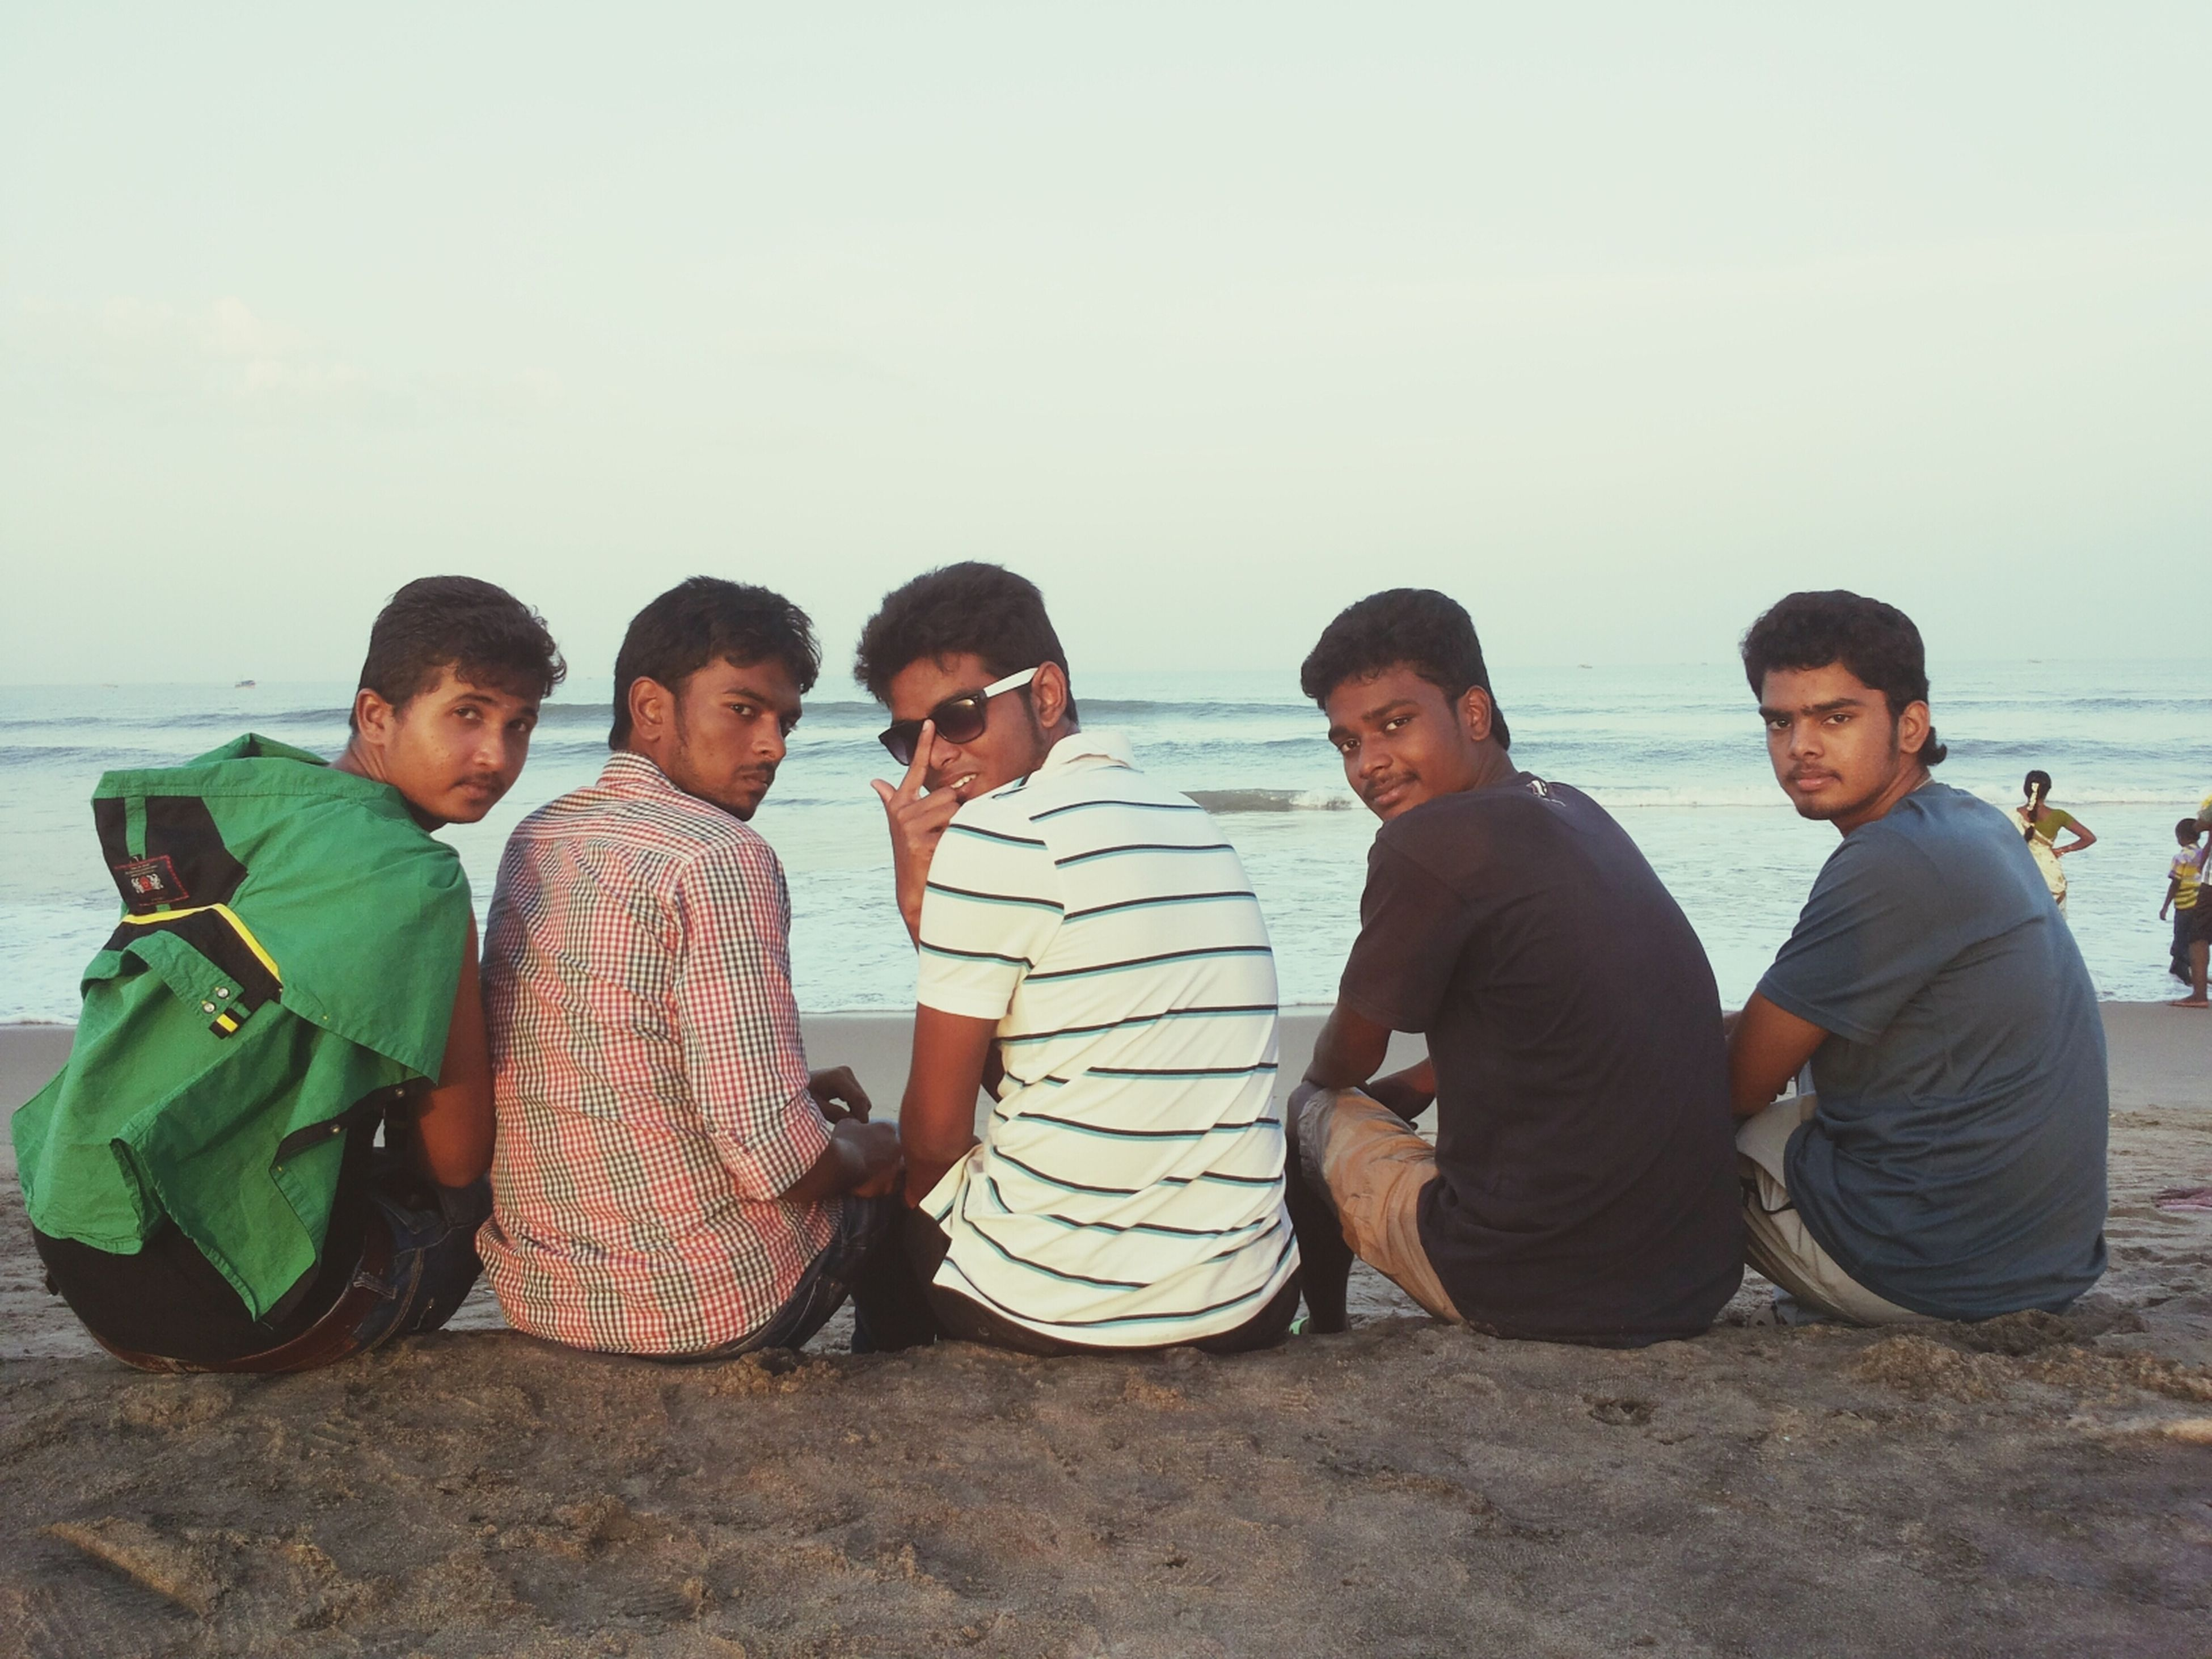 togetherness, bonding, lifestyles, leisure activity, love, casual clothing, friendship, family, sea, boys, young men, beach, person, sitting, childhood, vacations, sibling, water